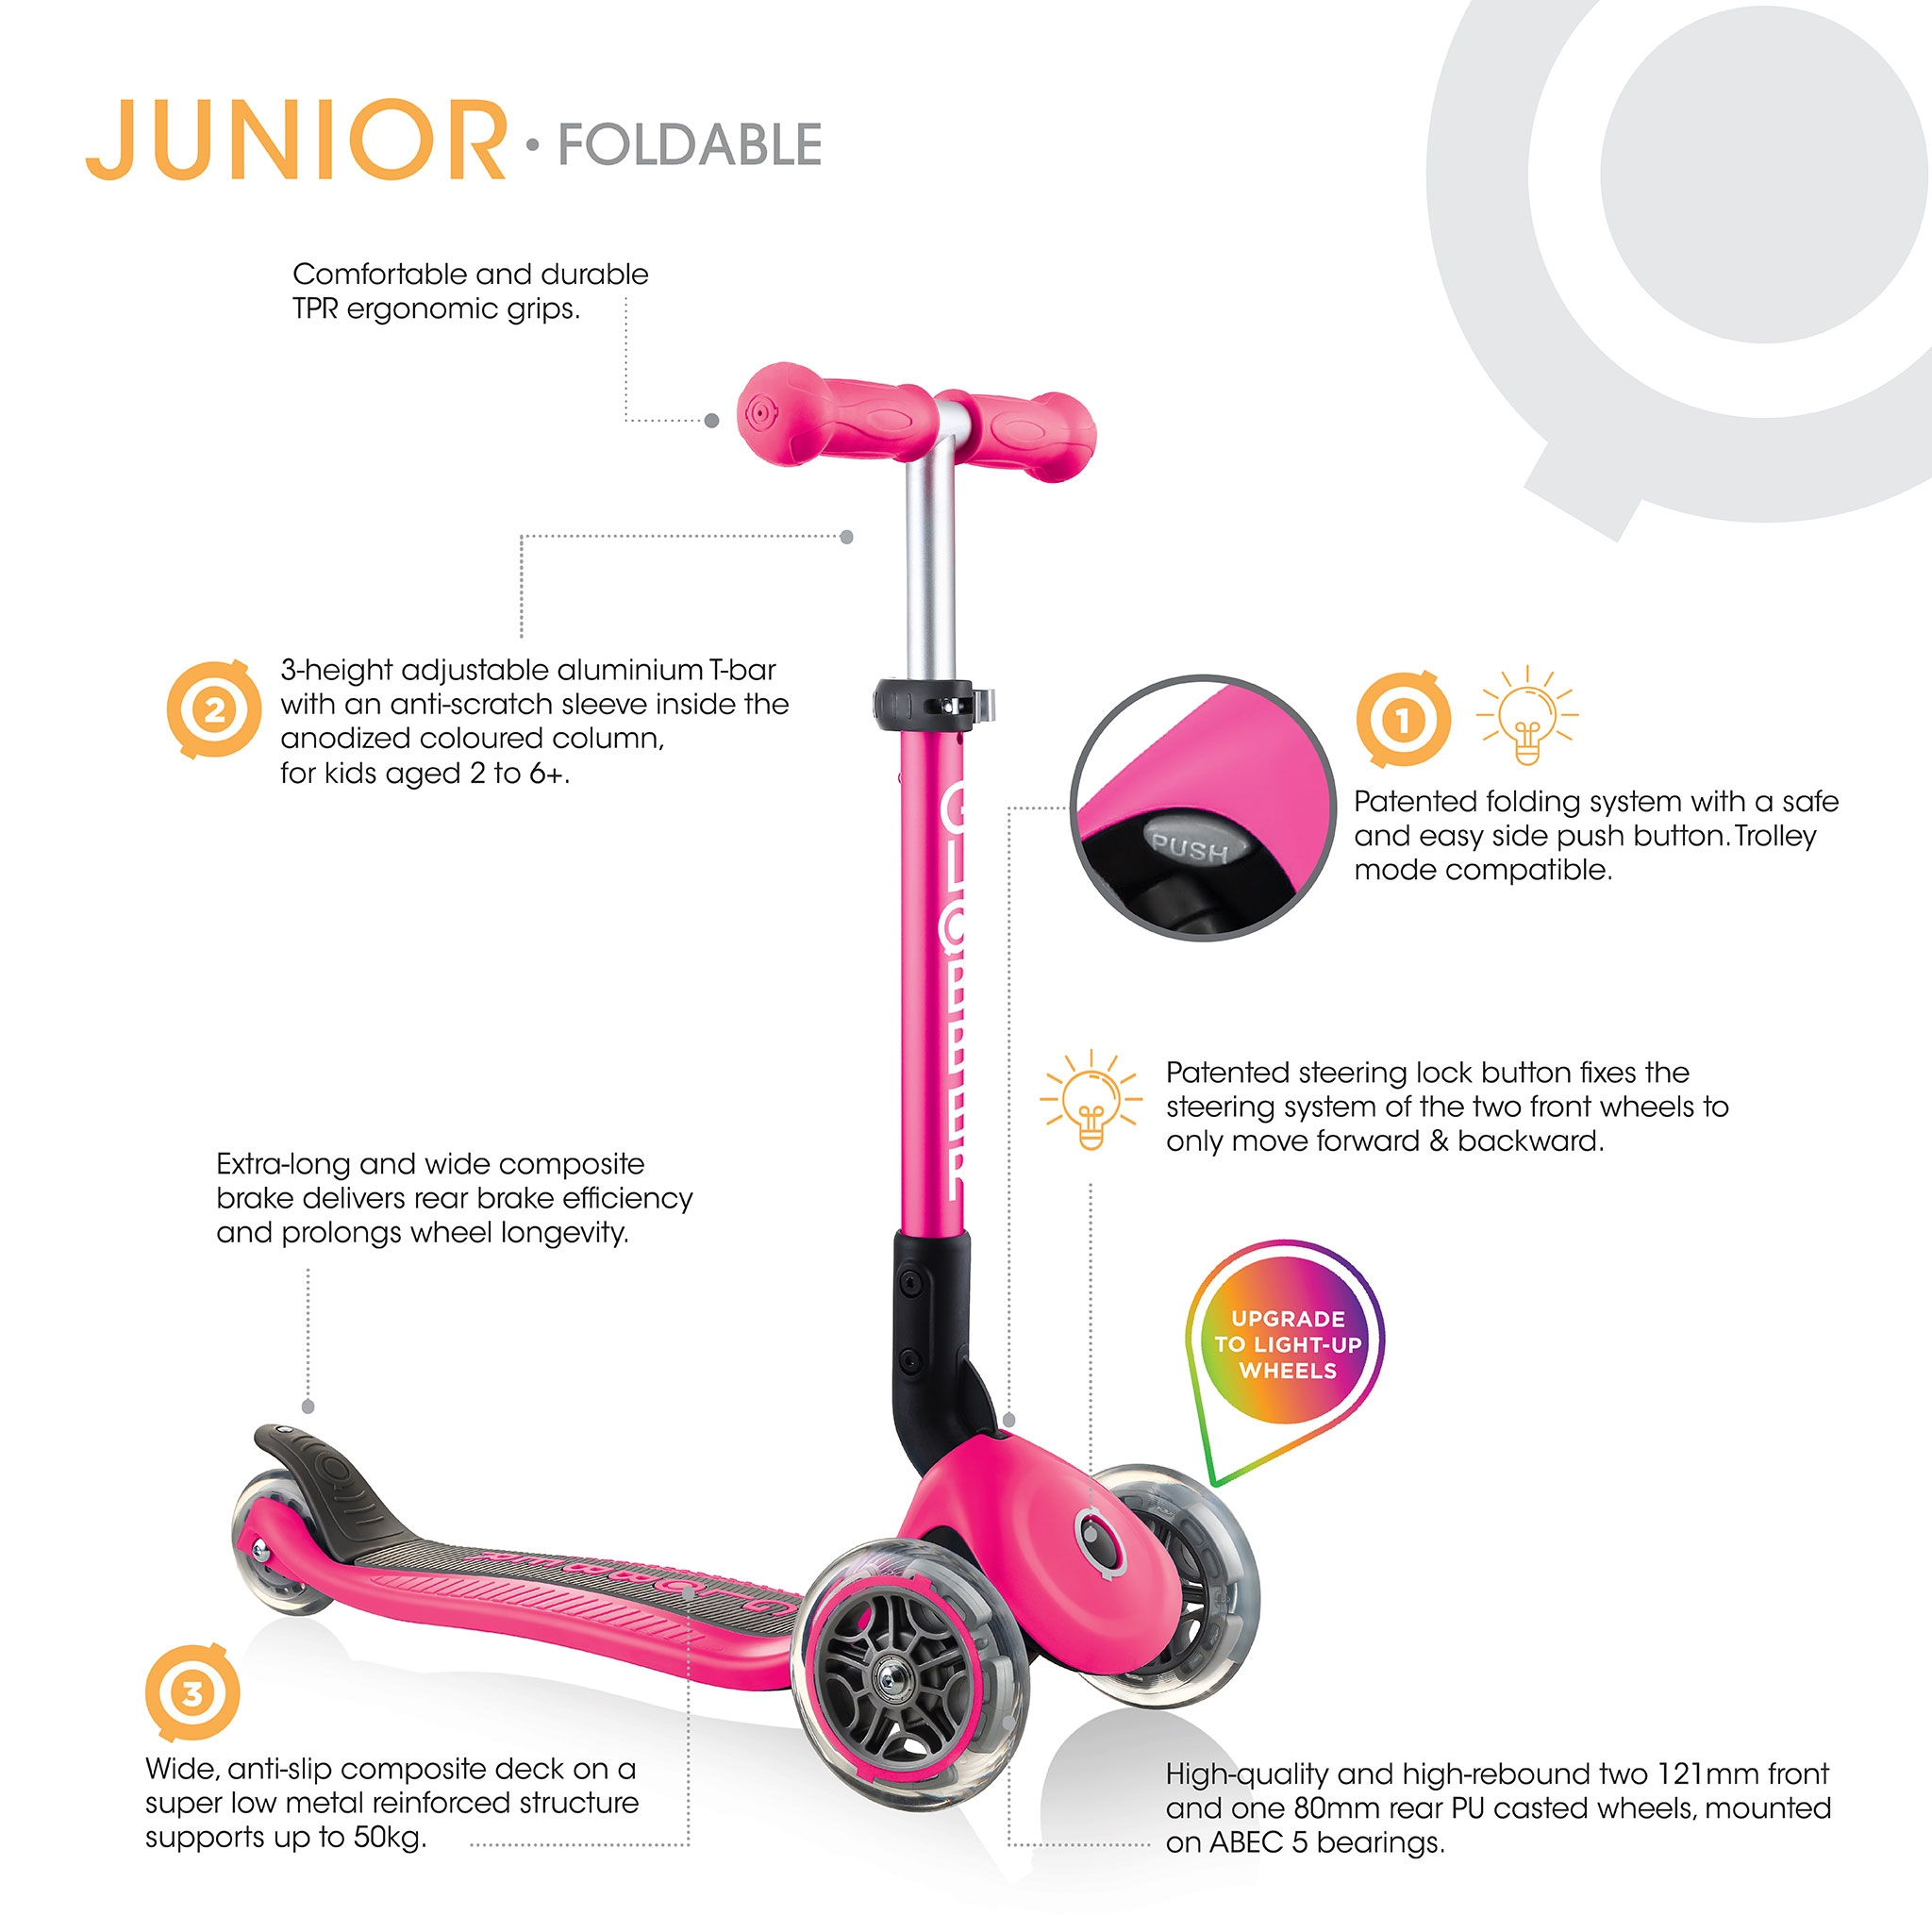 3-wheel-foldable-light-up-scooter-for-toddlers-aged-2-and-above-Globber-JUNIOR-FOLDABLE-LIGHTS